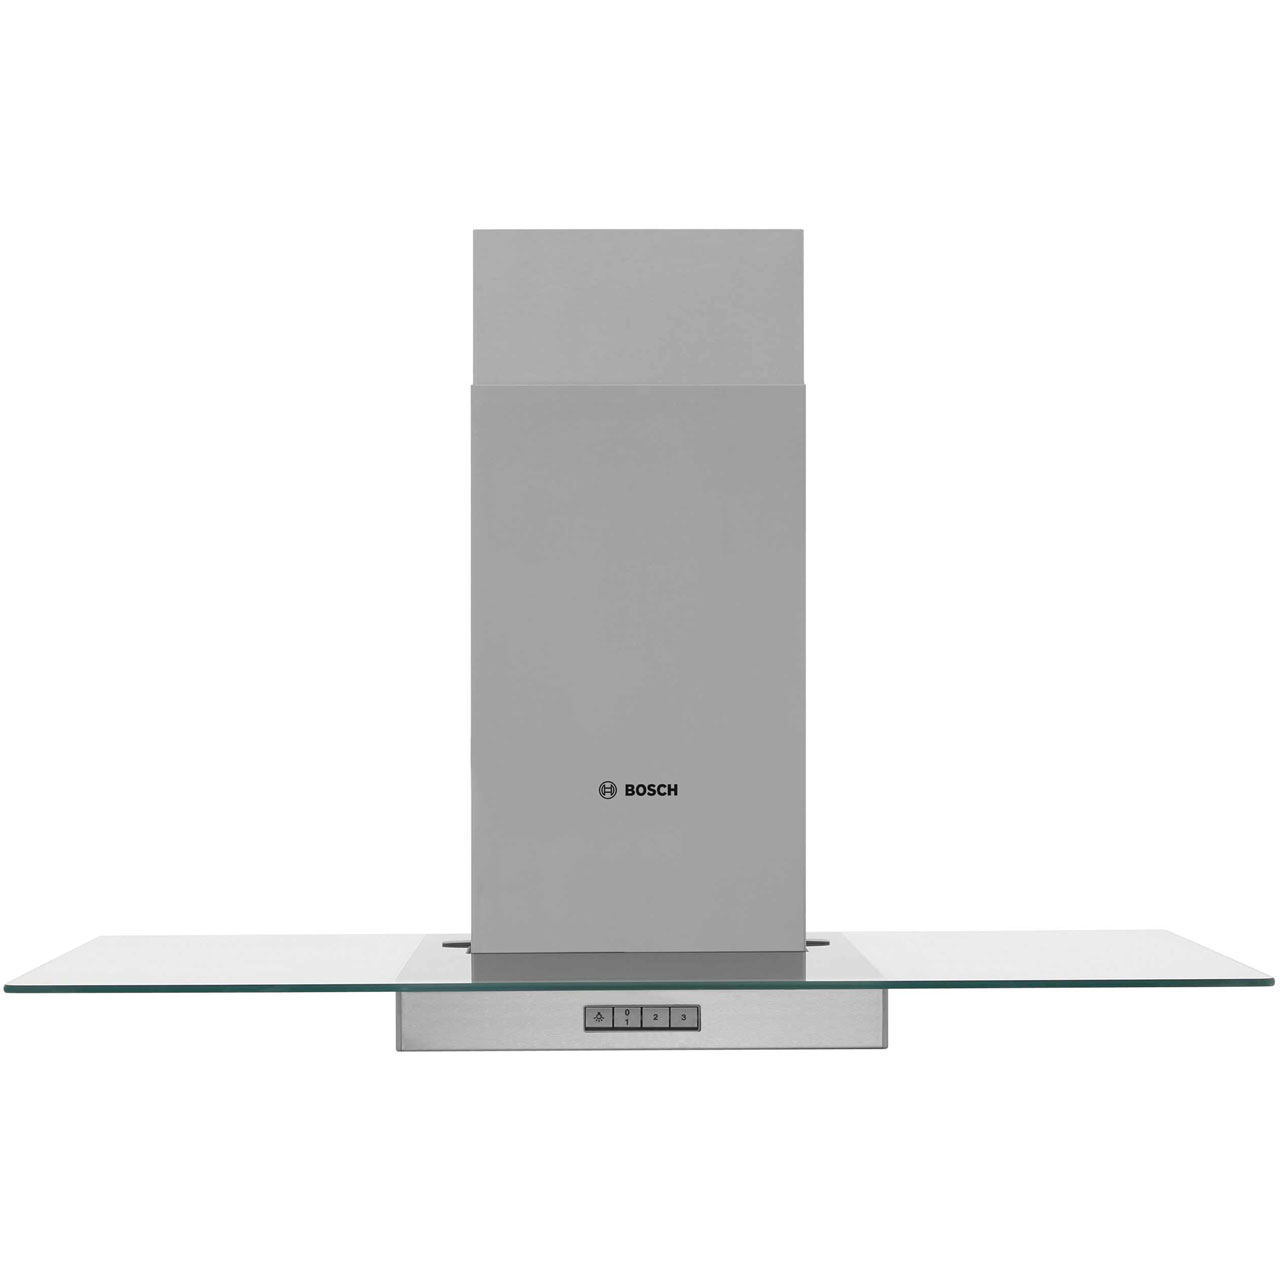 Image of Bosch Serie 4 DWA094W50B Integrated Cooker Hood in Brushed Steel